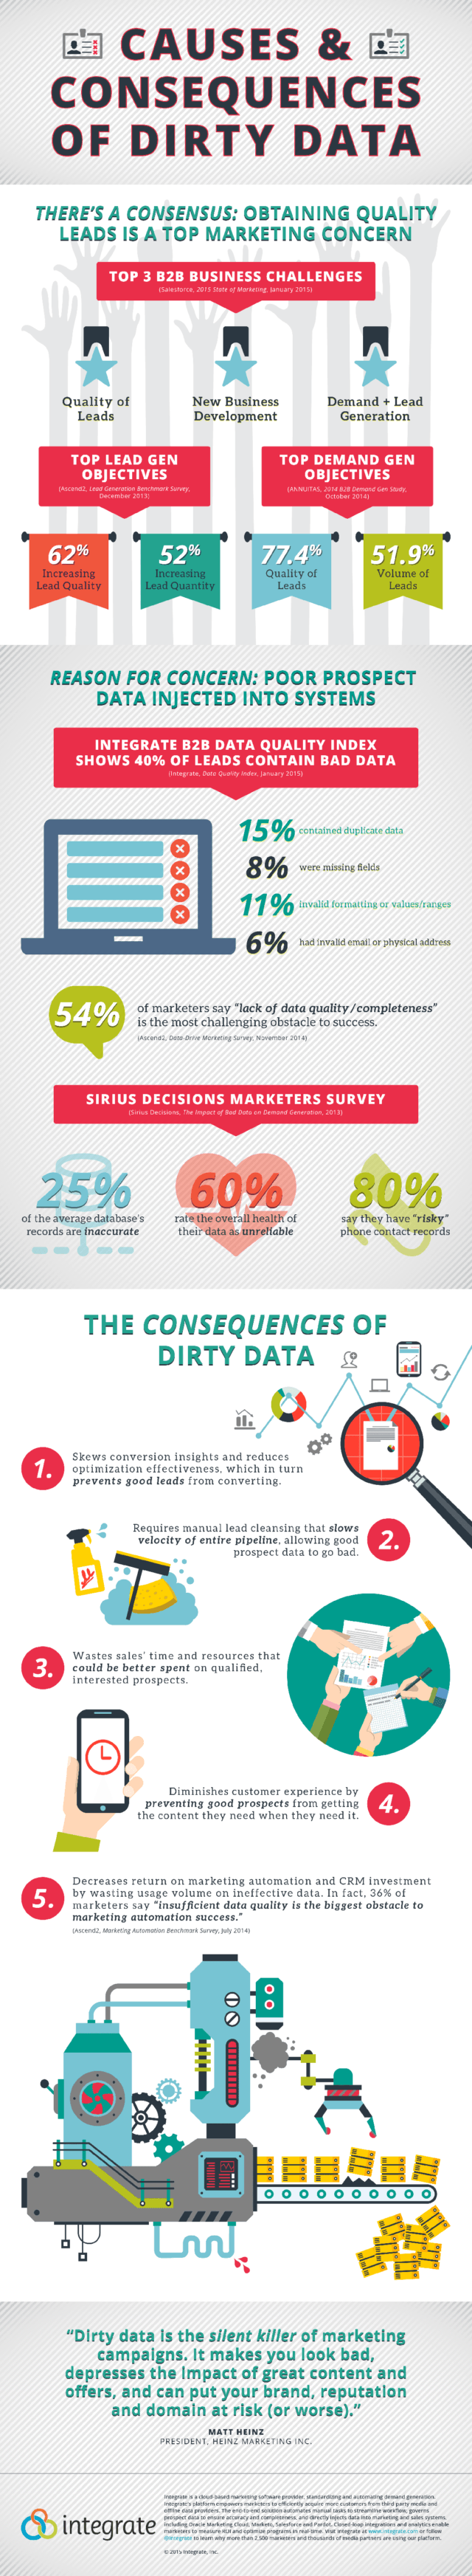 The Causes and Consequences of Dirty Data